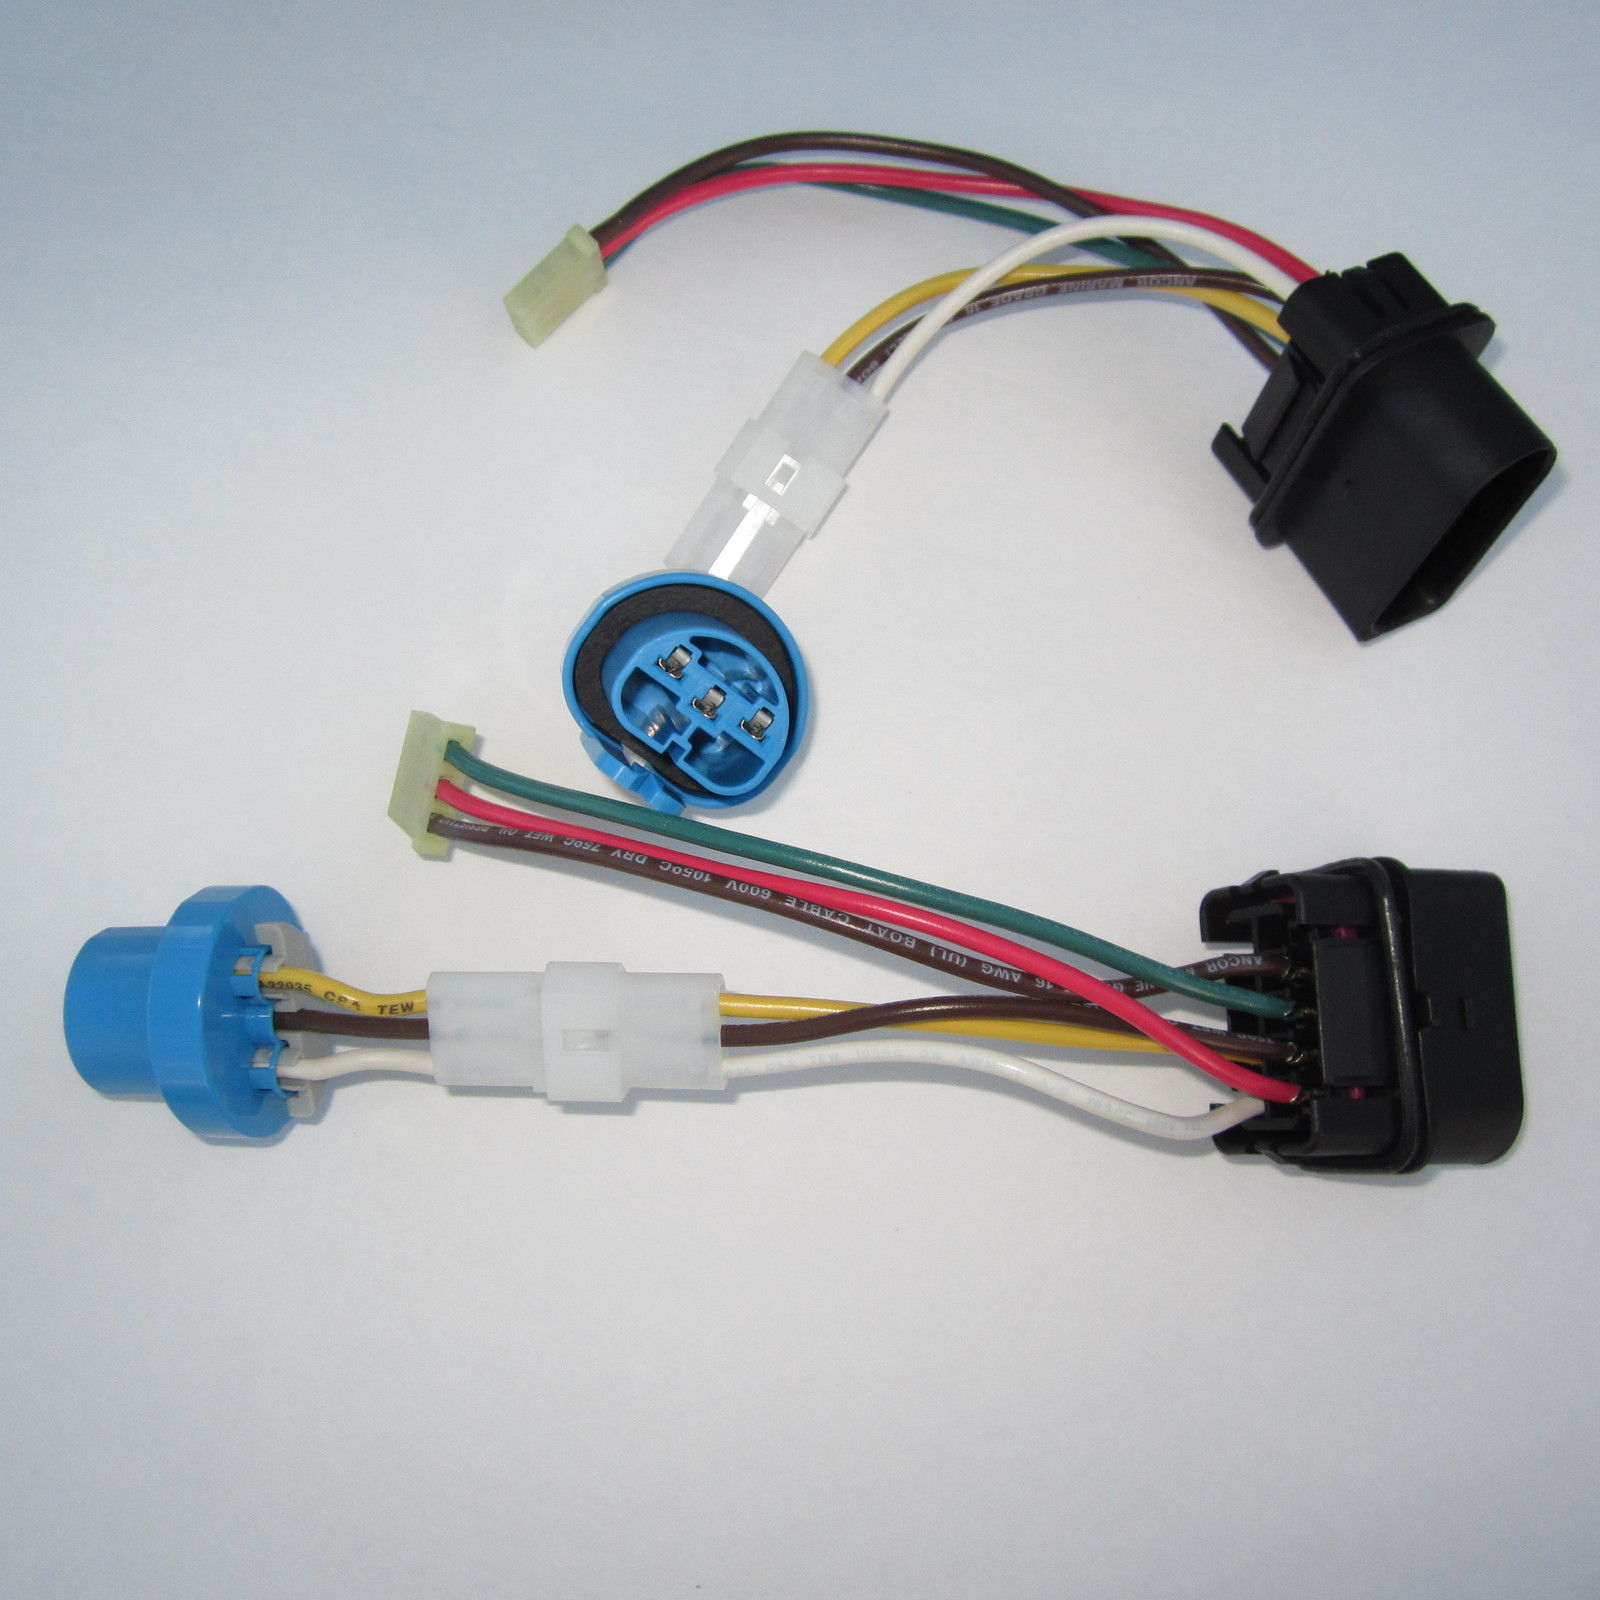 221341336752 2 2) new complete internal headlight wiring harness 1999 2005 vw vw jetta headlight wiring harness at mifinder.co